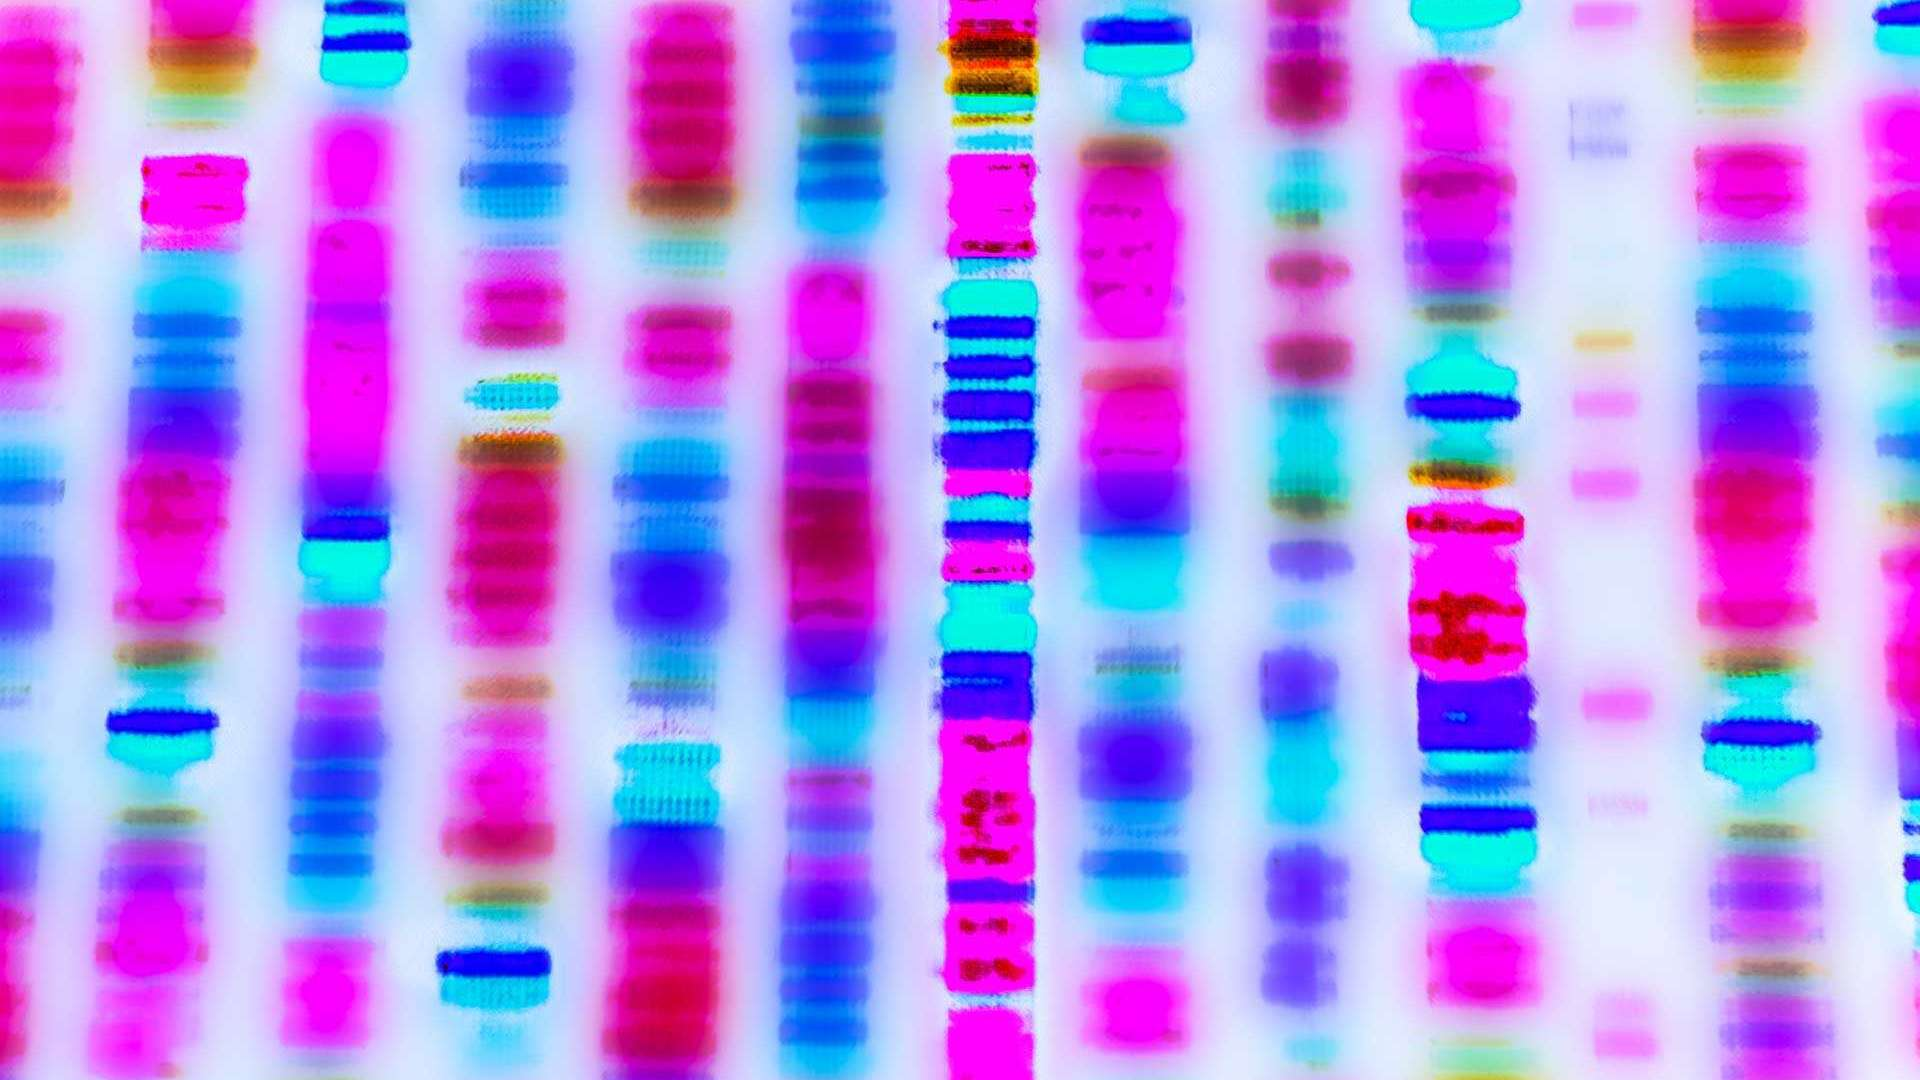 Unlocking the secrets of DNA has meant researchers can undersatnd the molecular basis of diseases